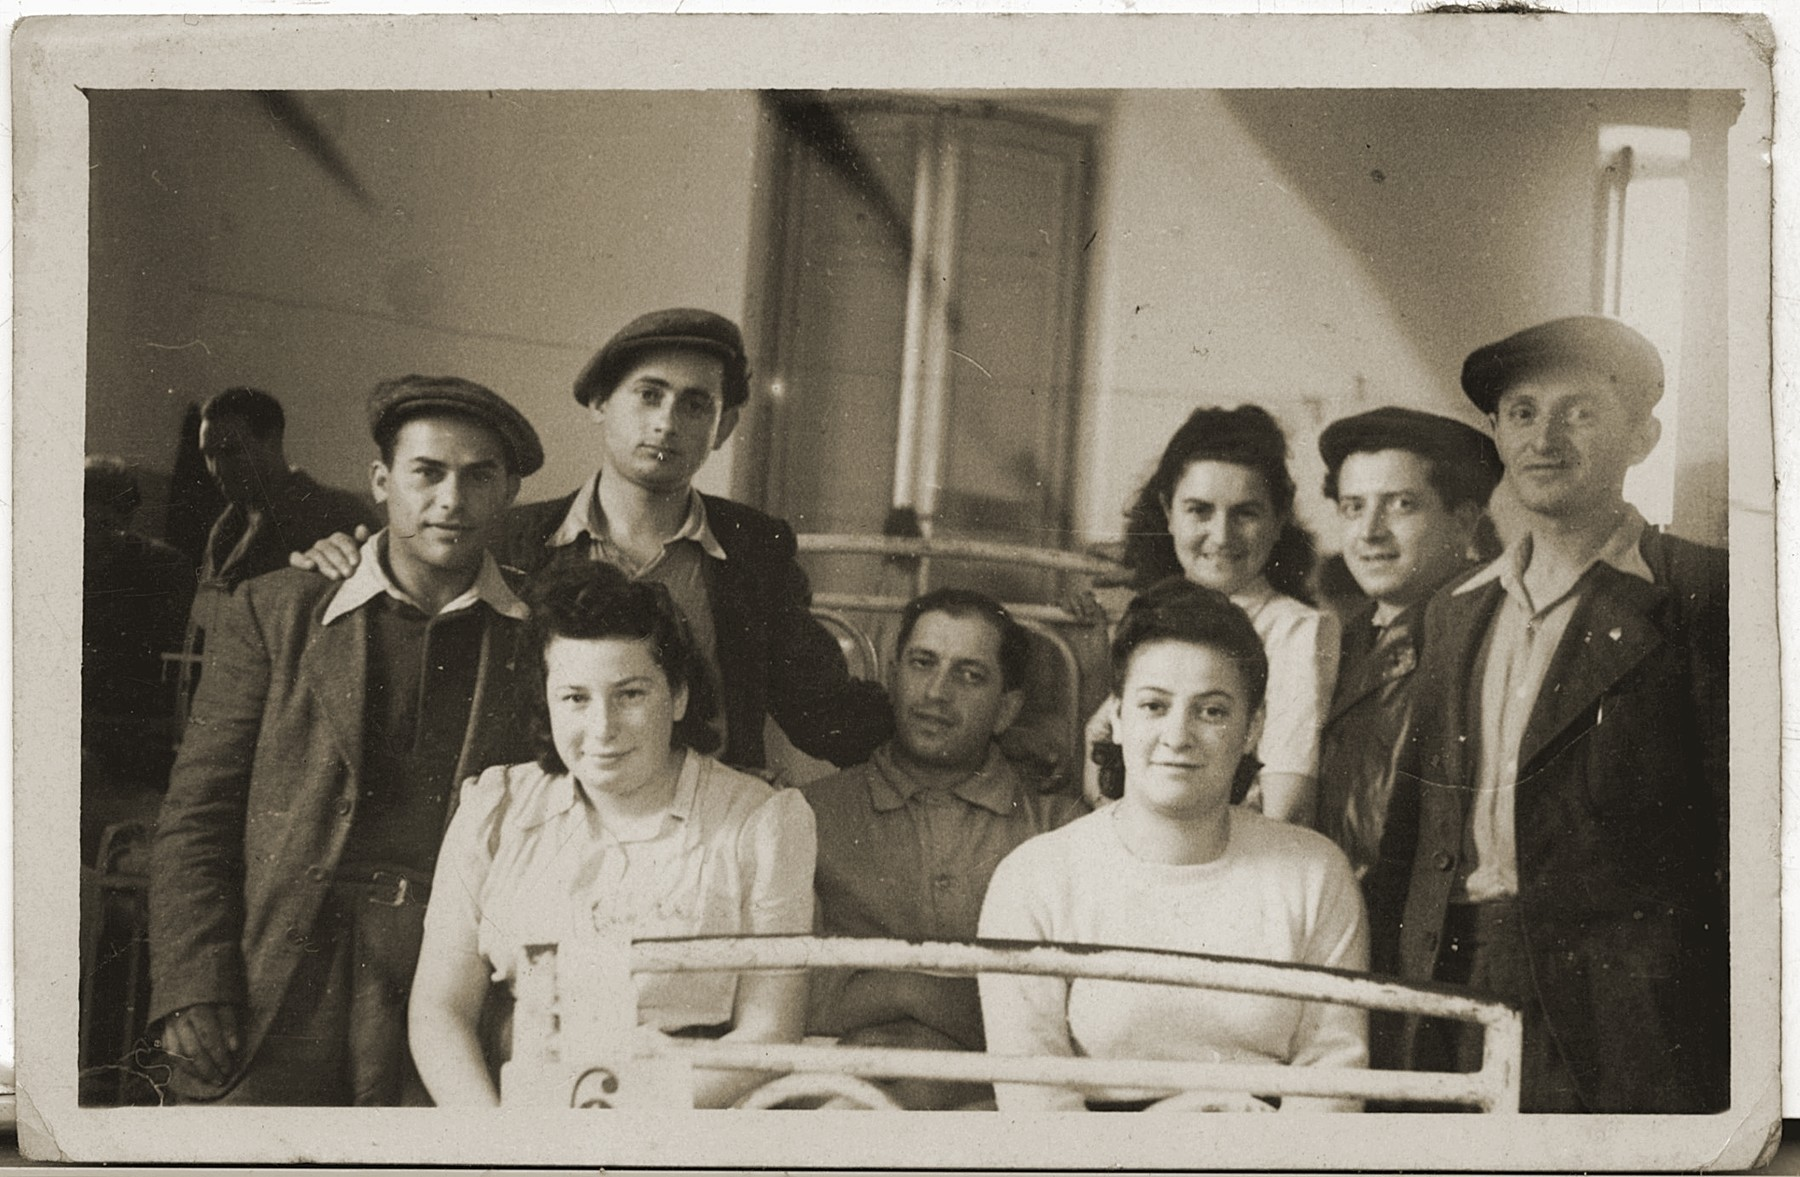 Members of Kibbutz Magshimim visit a friend in the hospital.  Yehiel Hershkowitz is second from the right.  Esther Urman is third from the right.